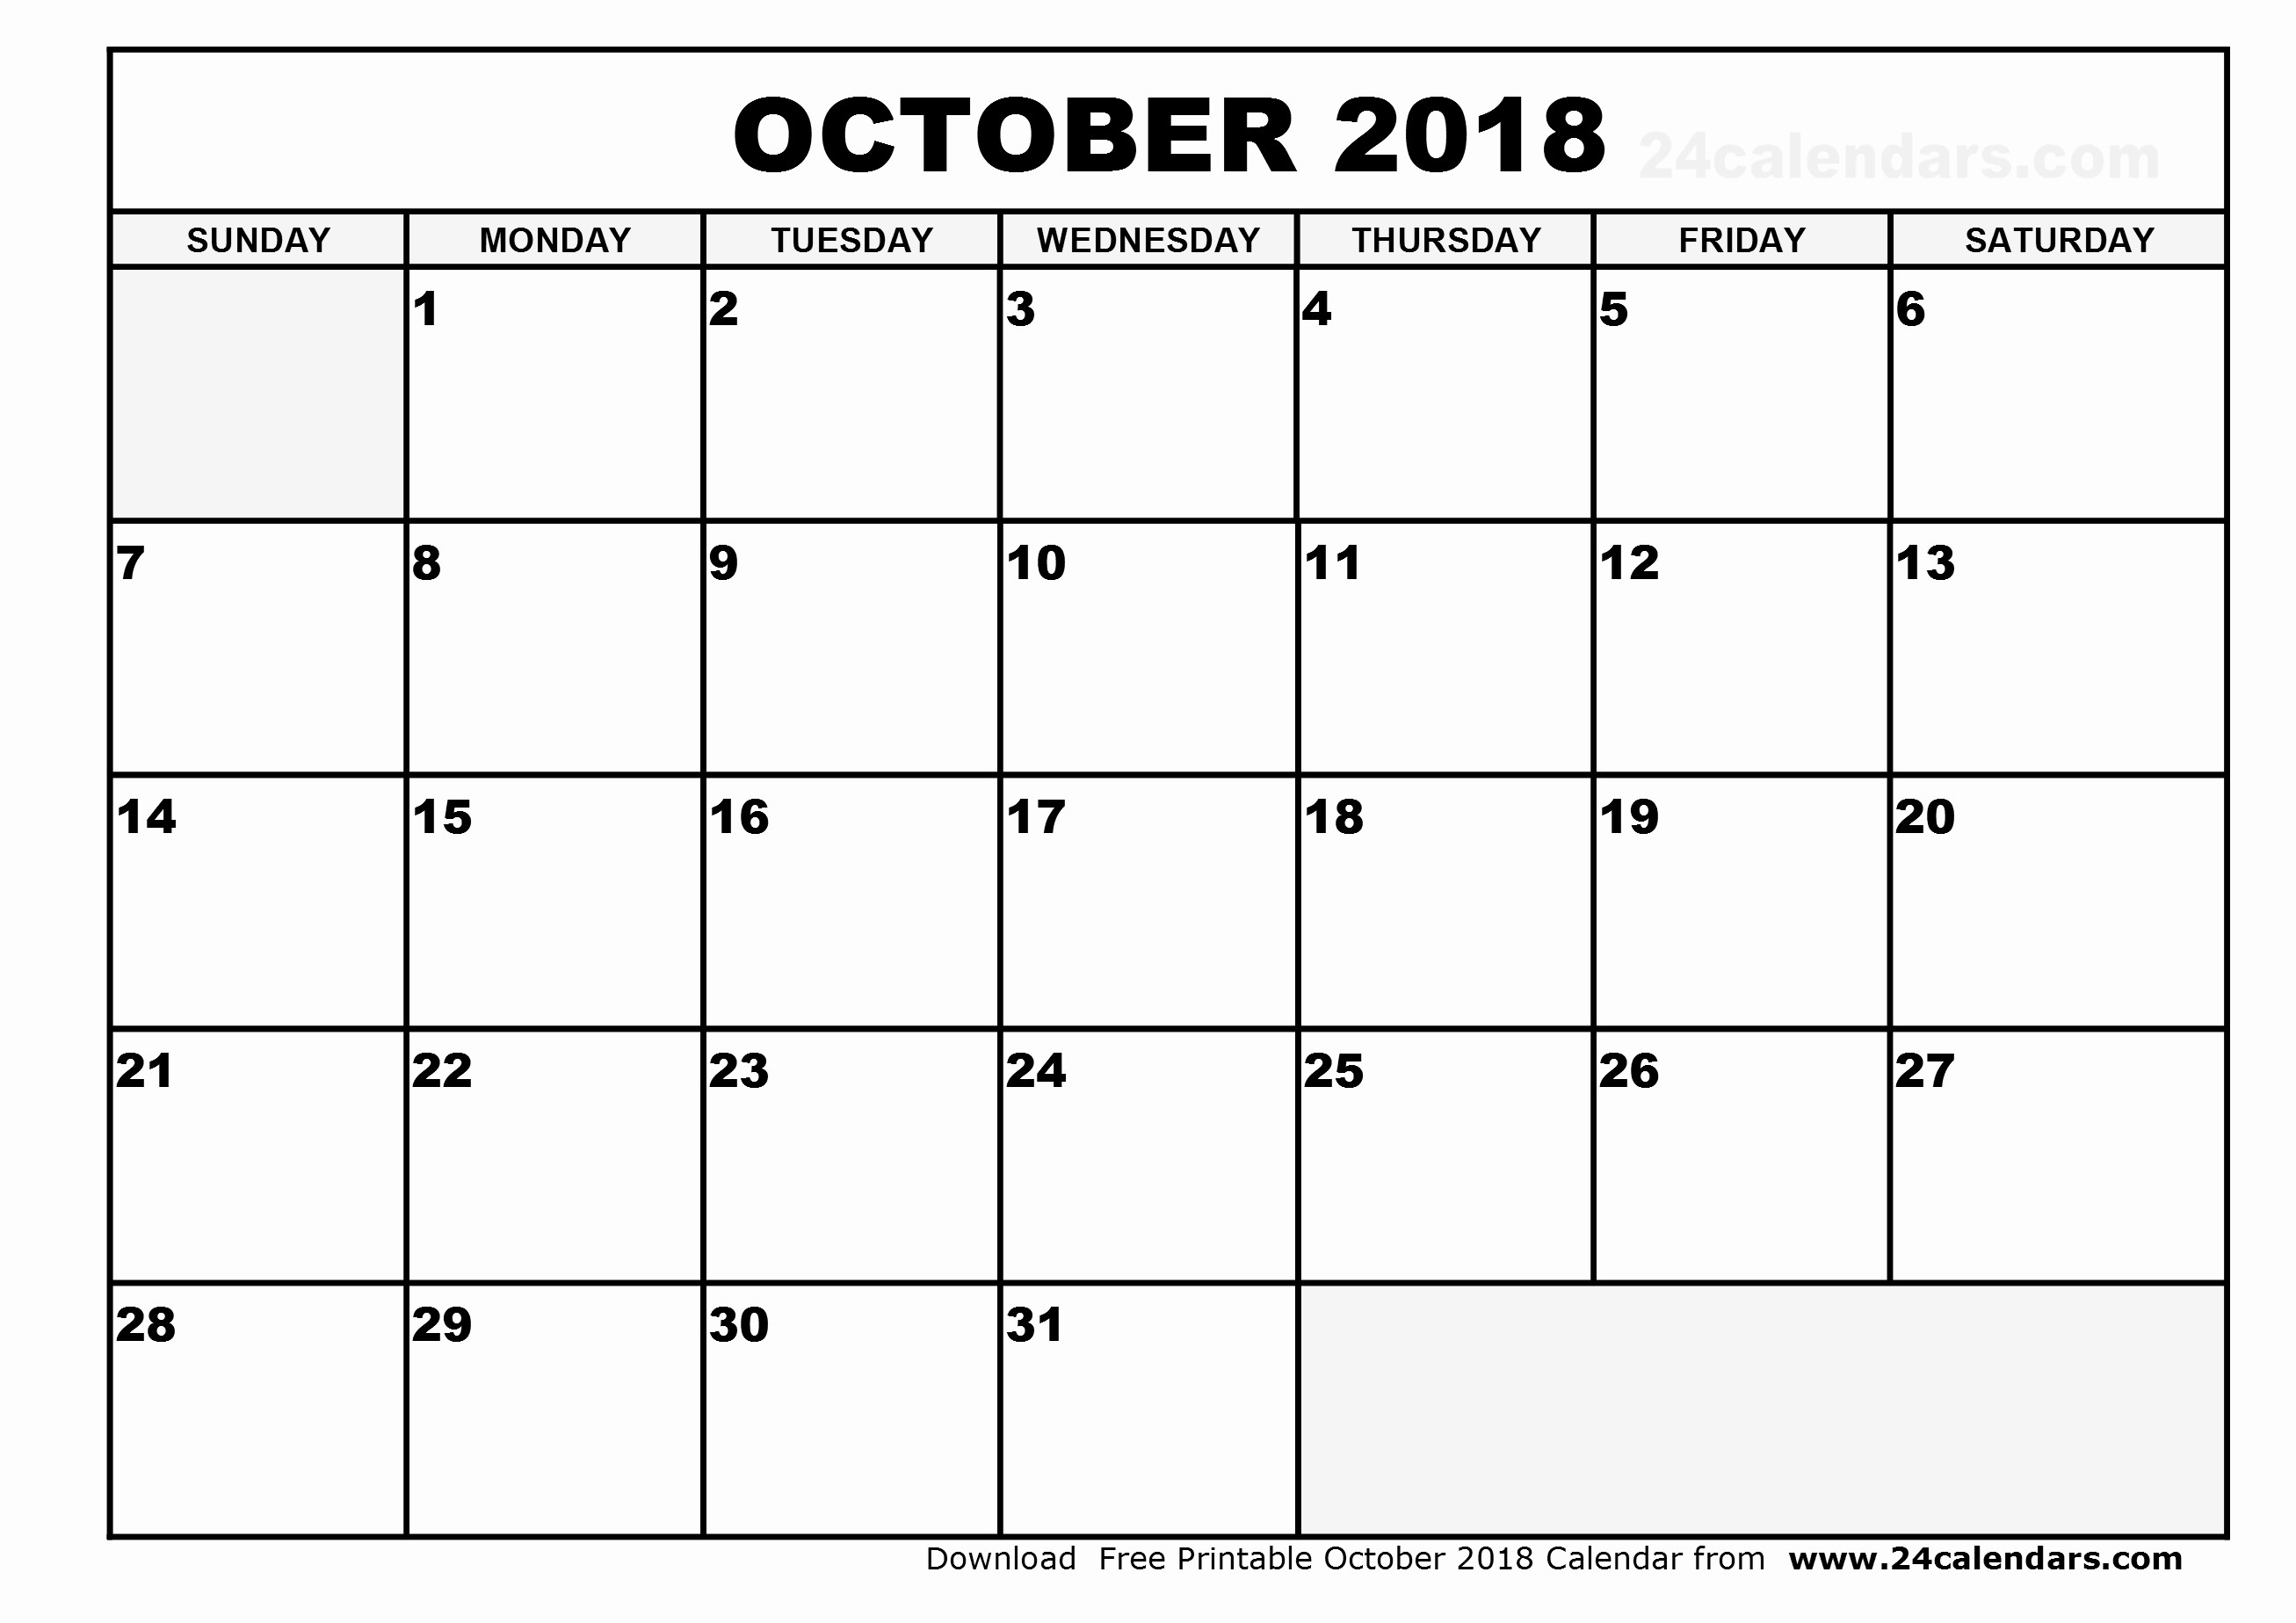 October 2018 Printable Calendar Word Fresh October 2018 Calendar